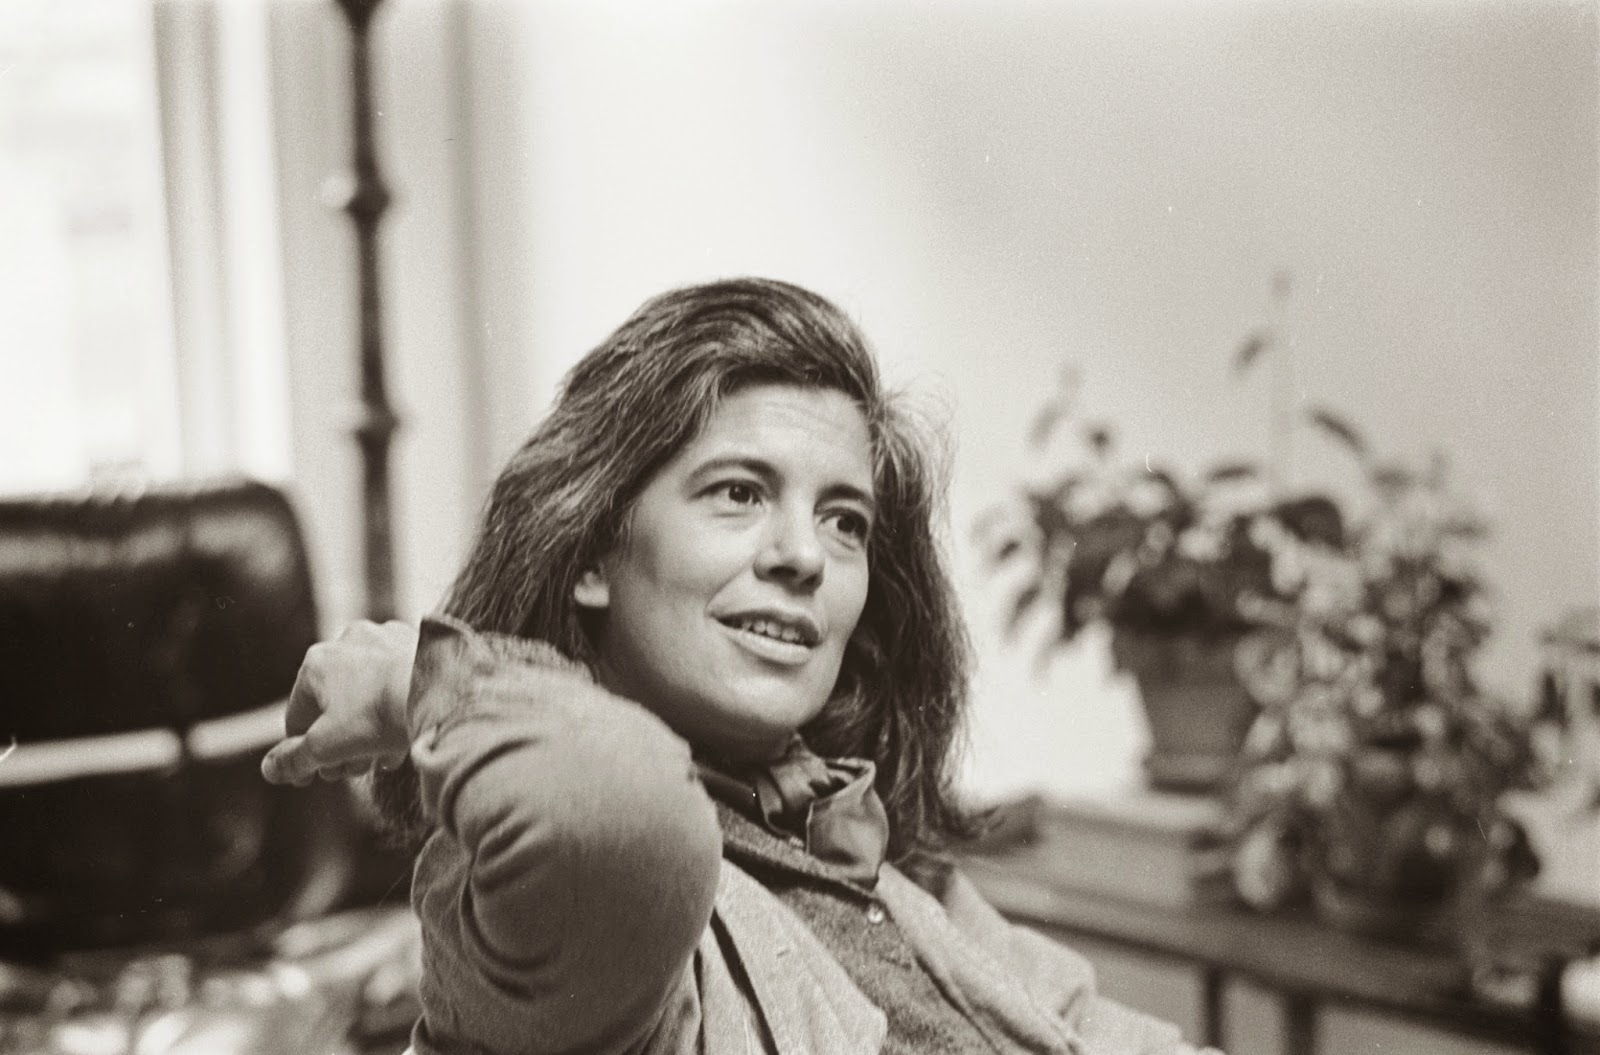 susan sontag essay on photography susan sontag faces susan sontag  tribeca special jury mention regarding susan sontag thalo tribeca special jury mention regarding susan sontag